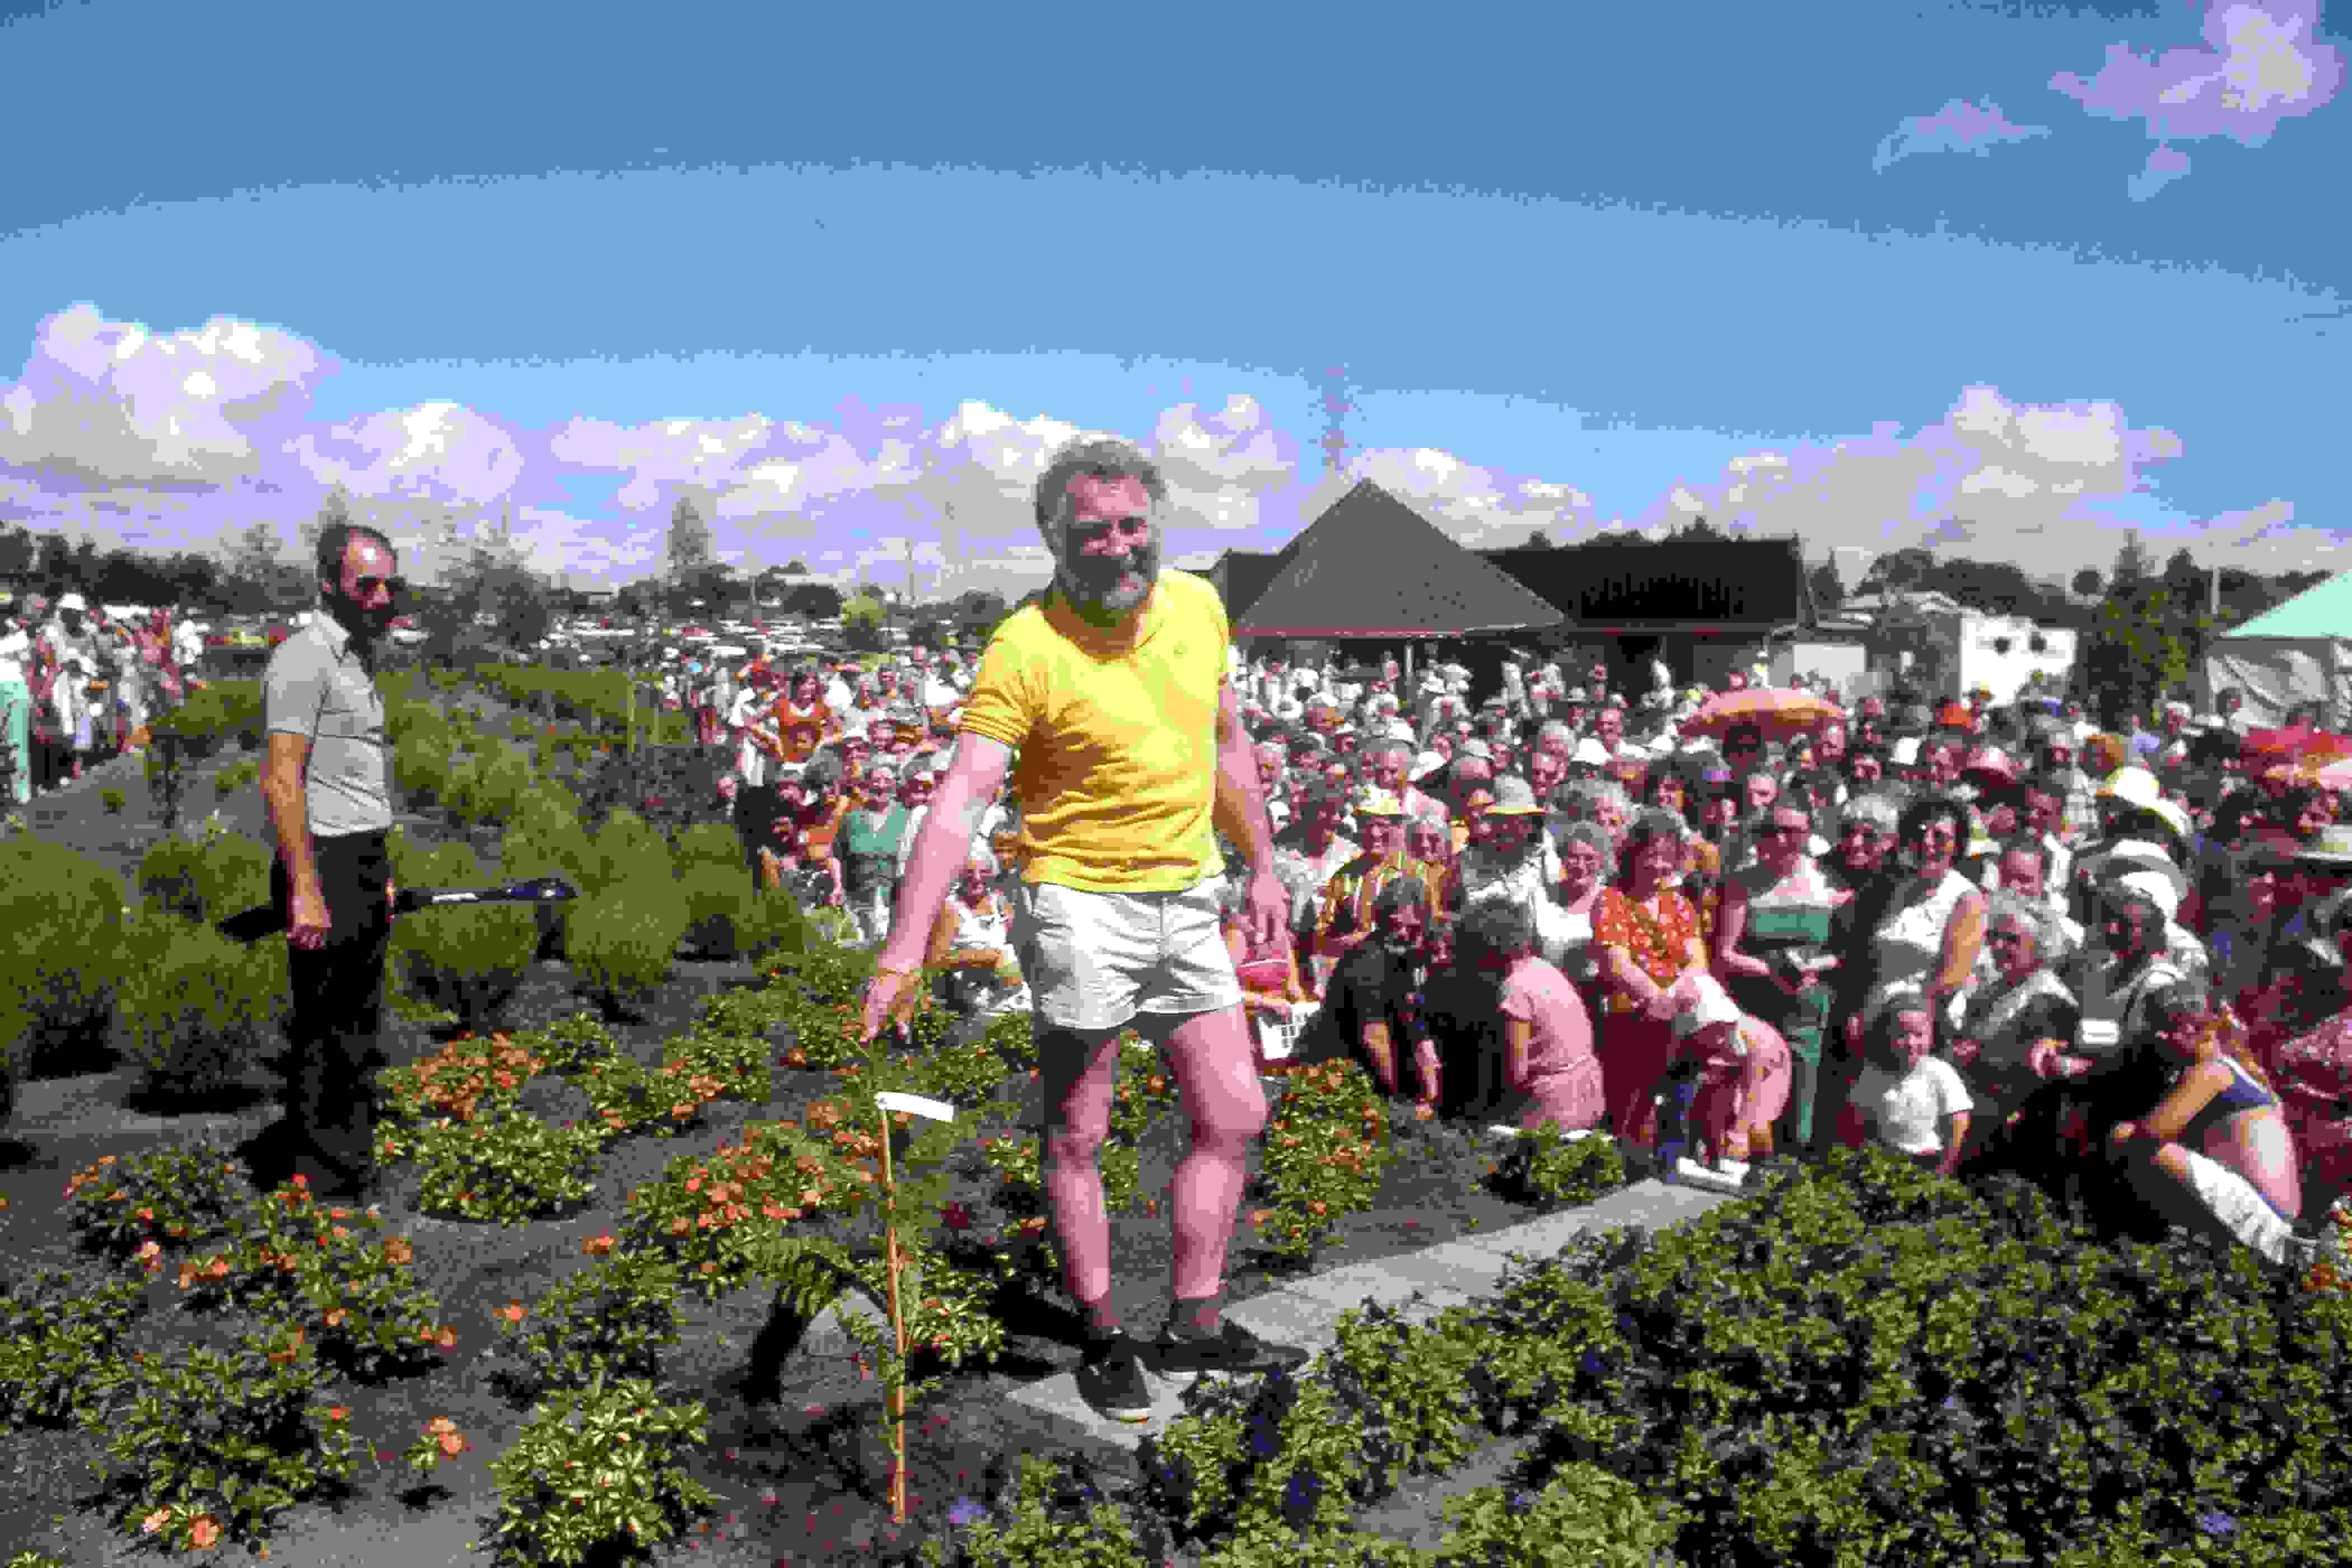 1982. David Bellamy at the opening of the Gardens.